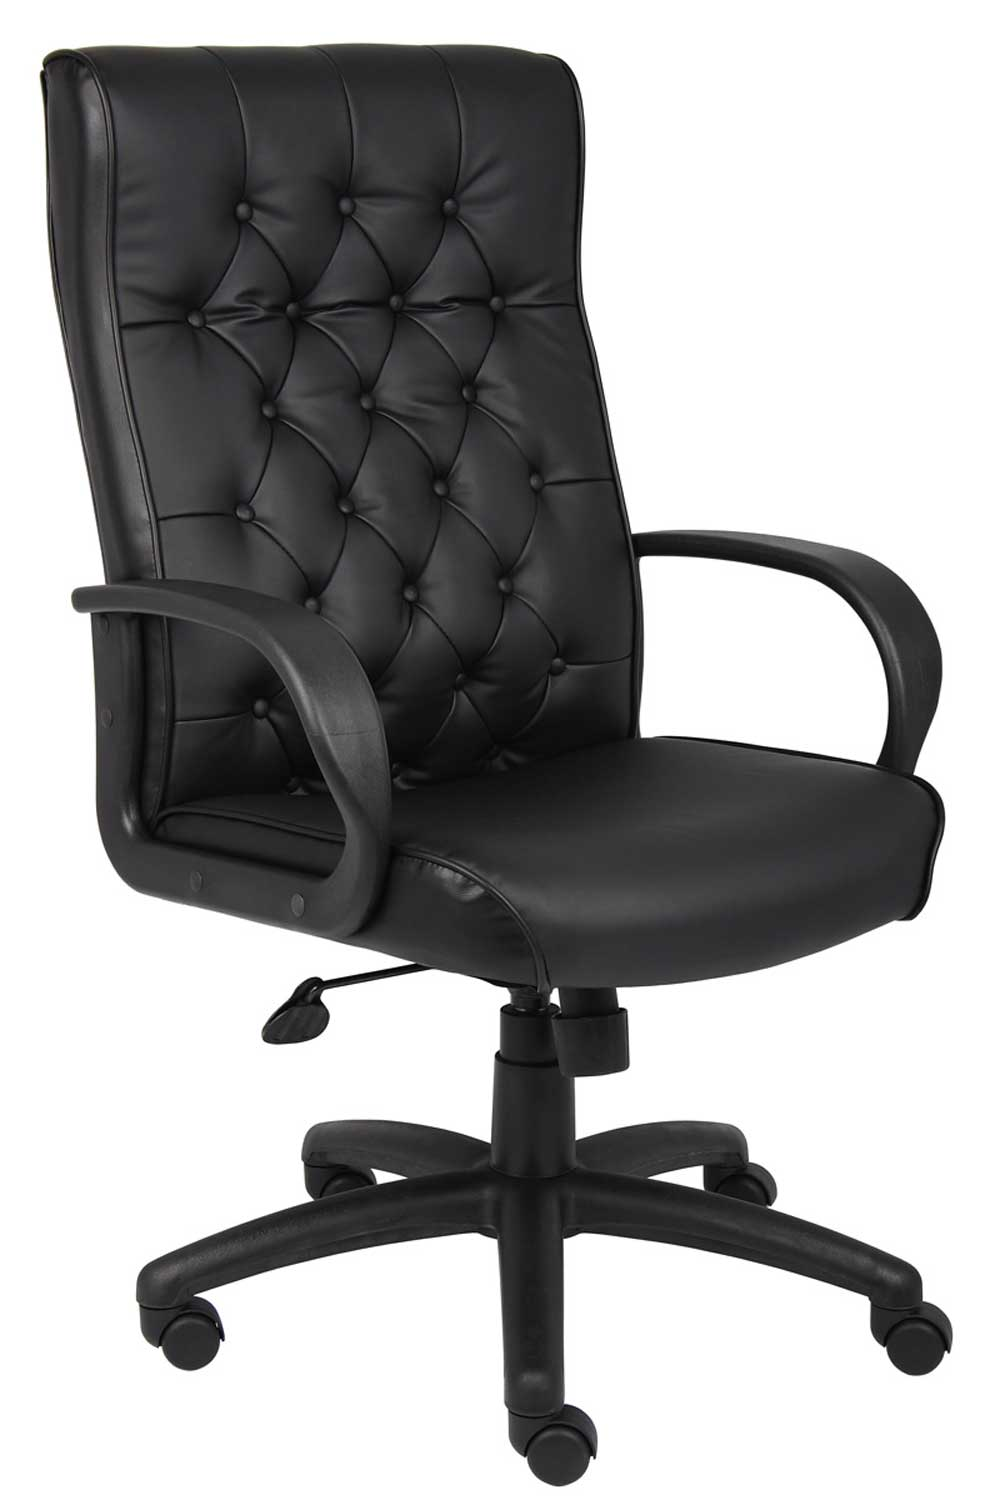 BOSS Adjustable Traditional High Back Office Chair